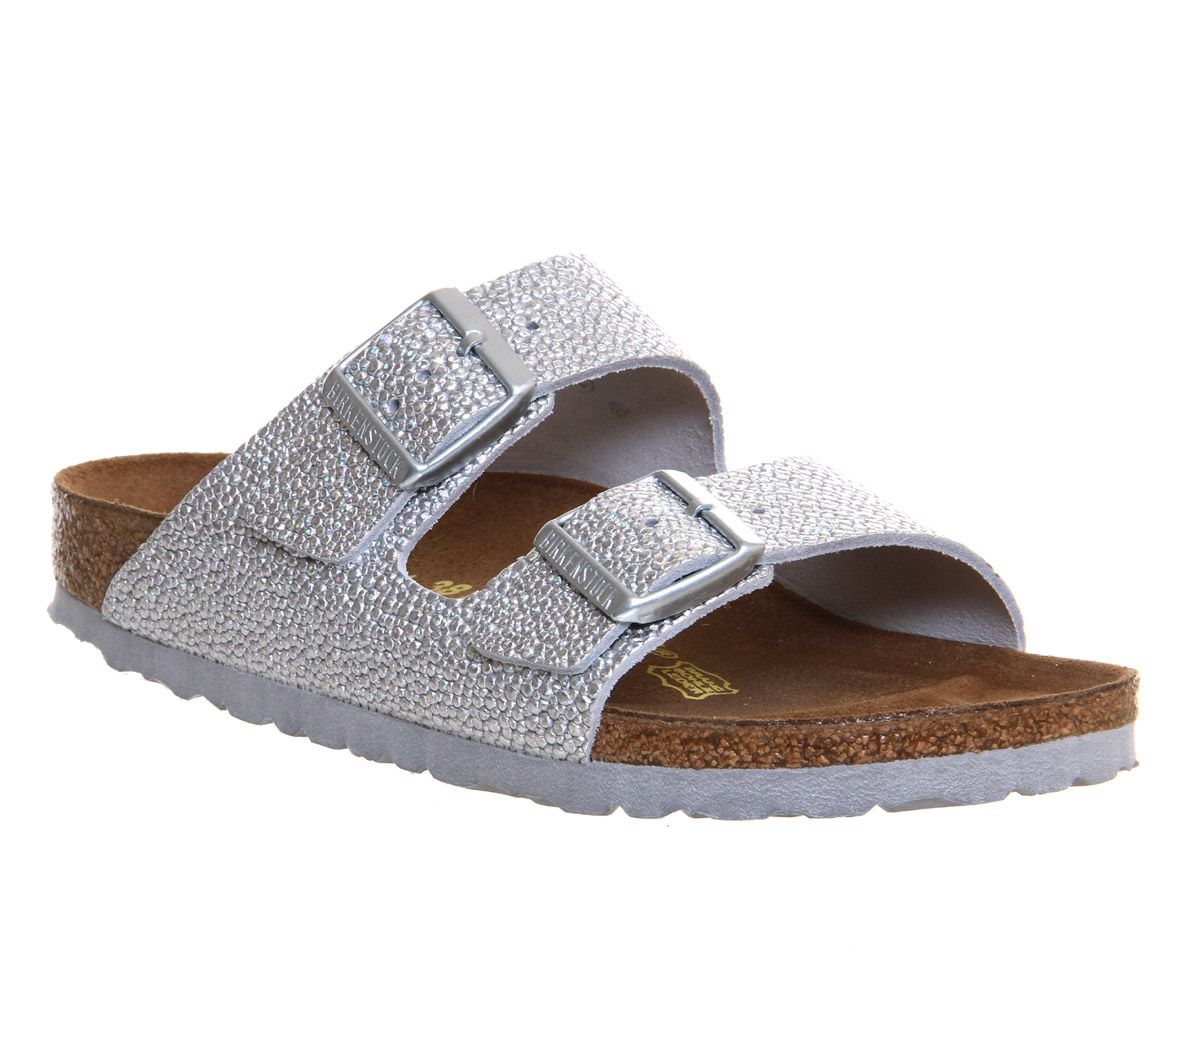 Birkenstock Arizona Two Strap Womens Sandals Silver Pebble